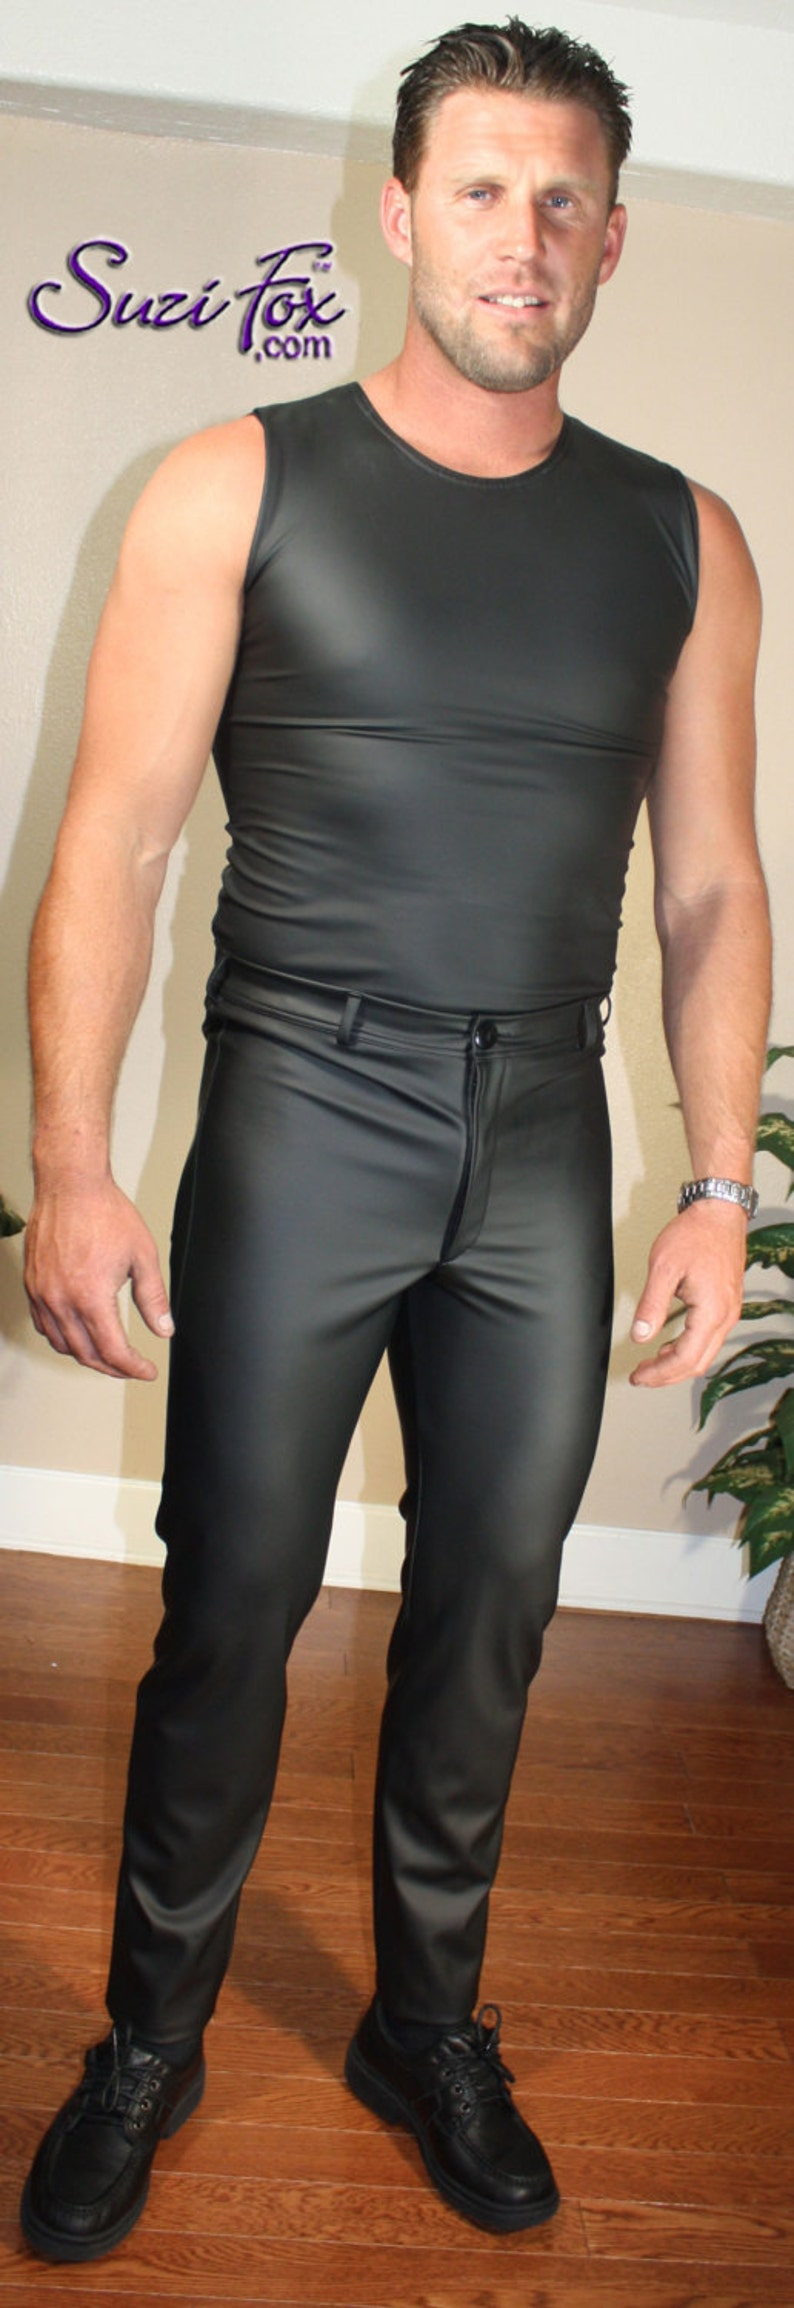 rear patch pockets and belt loops by Suzi Fox in stretch Vinyl pvc Mens jean style pants with fly zipper front